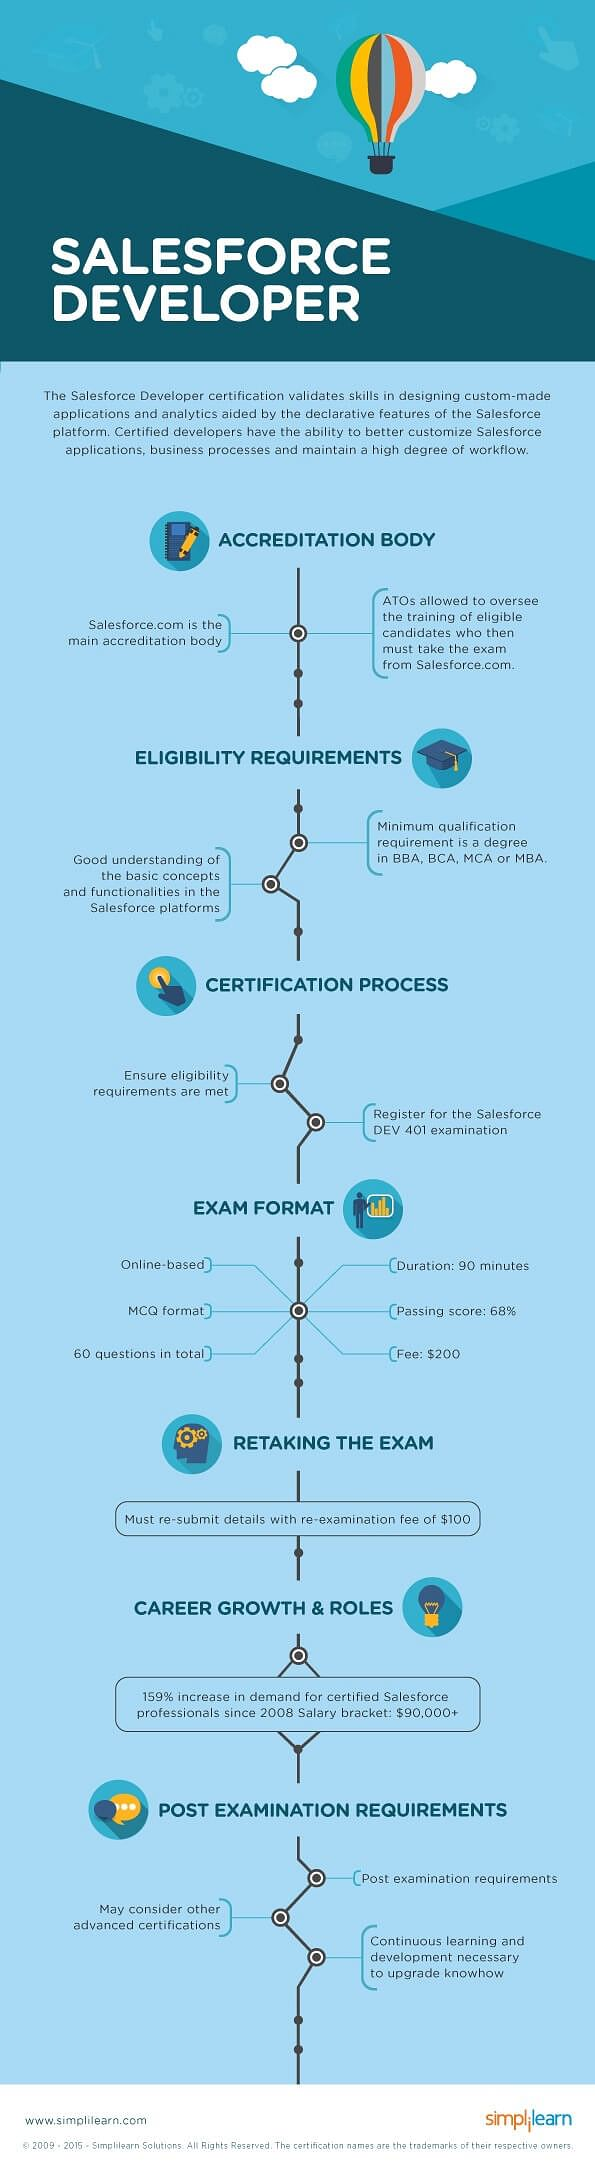 Eligibility exam process for salesforce developer course eligibility requirements and examination process salesforce developer certification course xflitez Choice Image